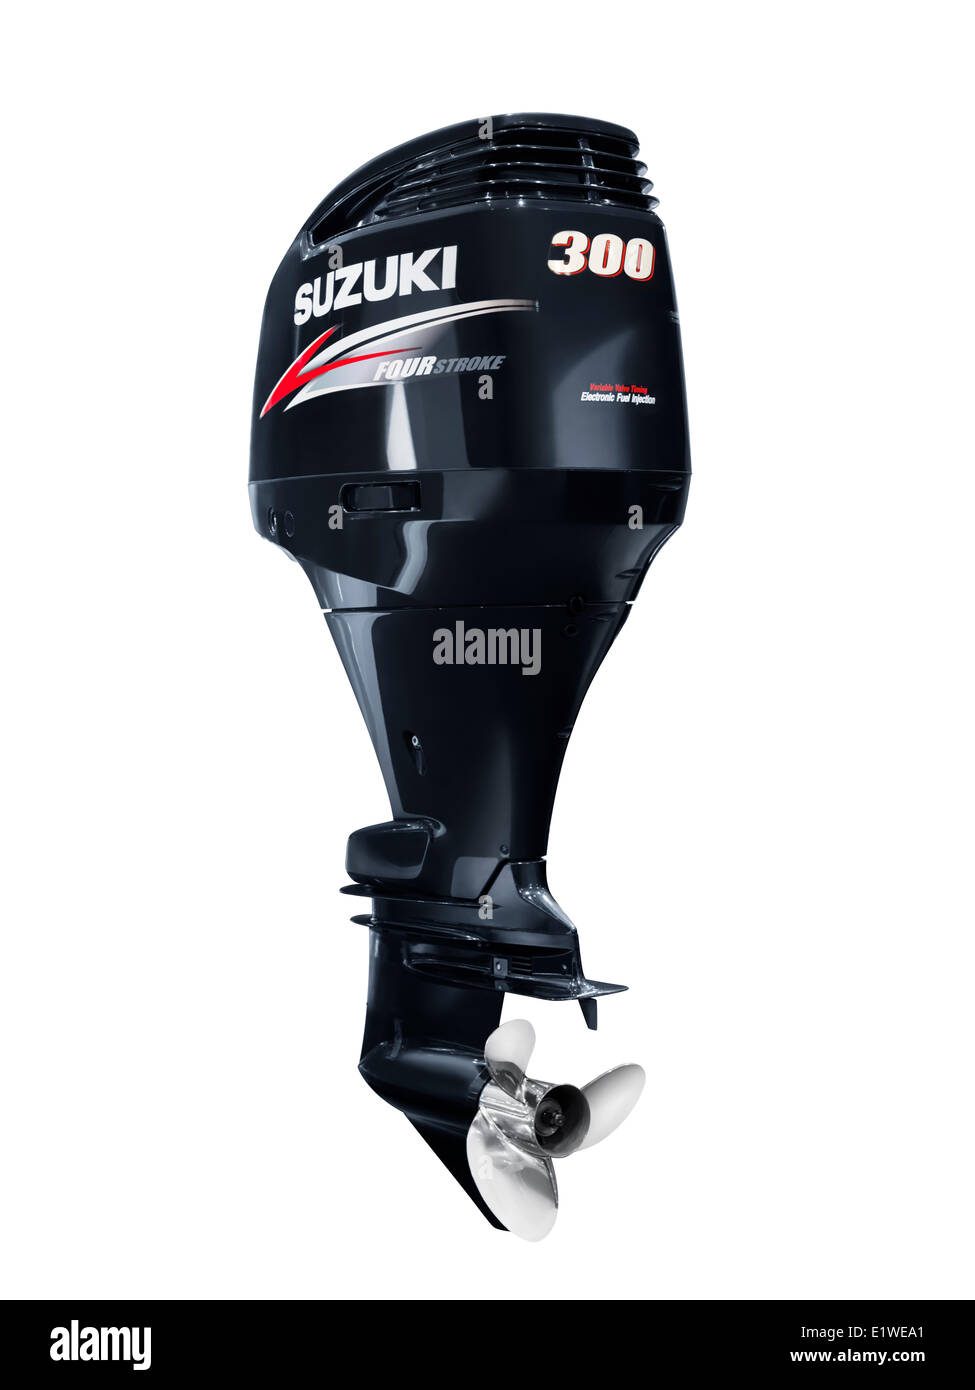 Suzuki 300 outboard boat motor four stroke engine isolated on white background with clipping path